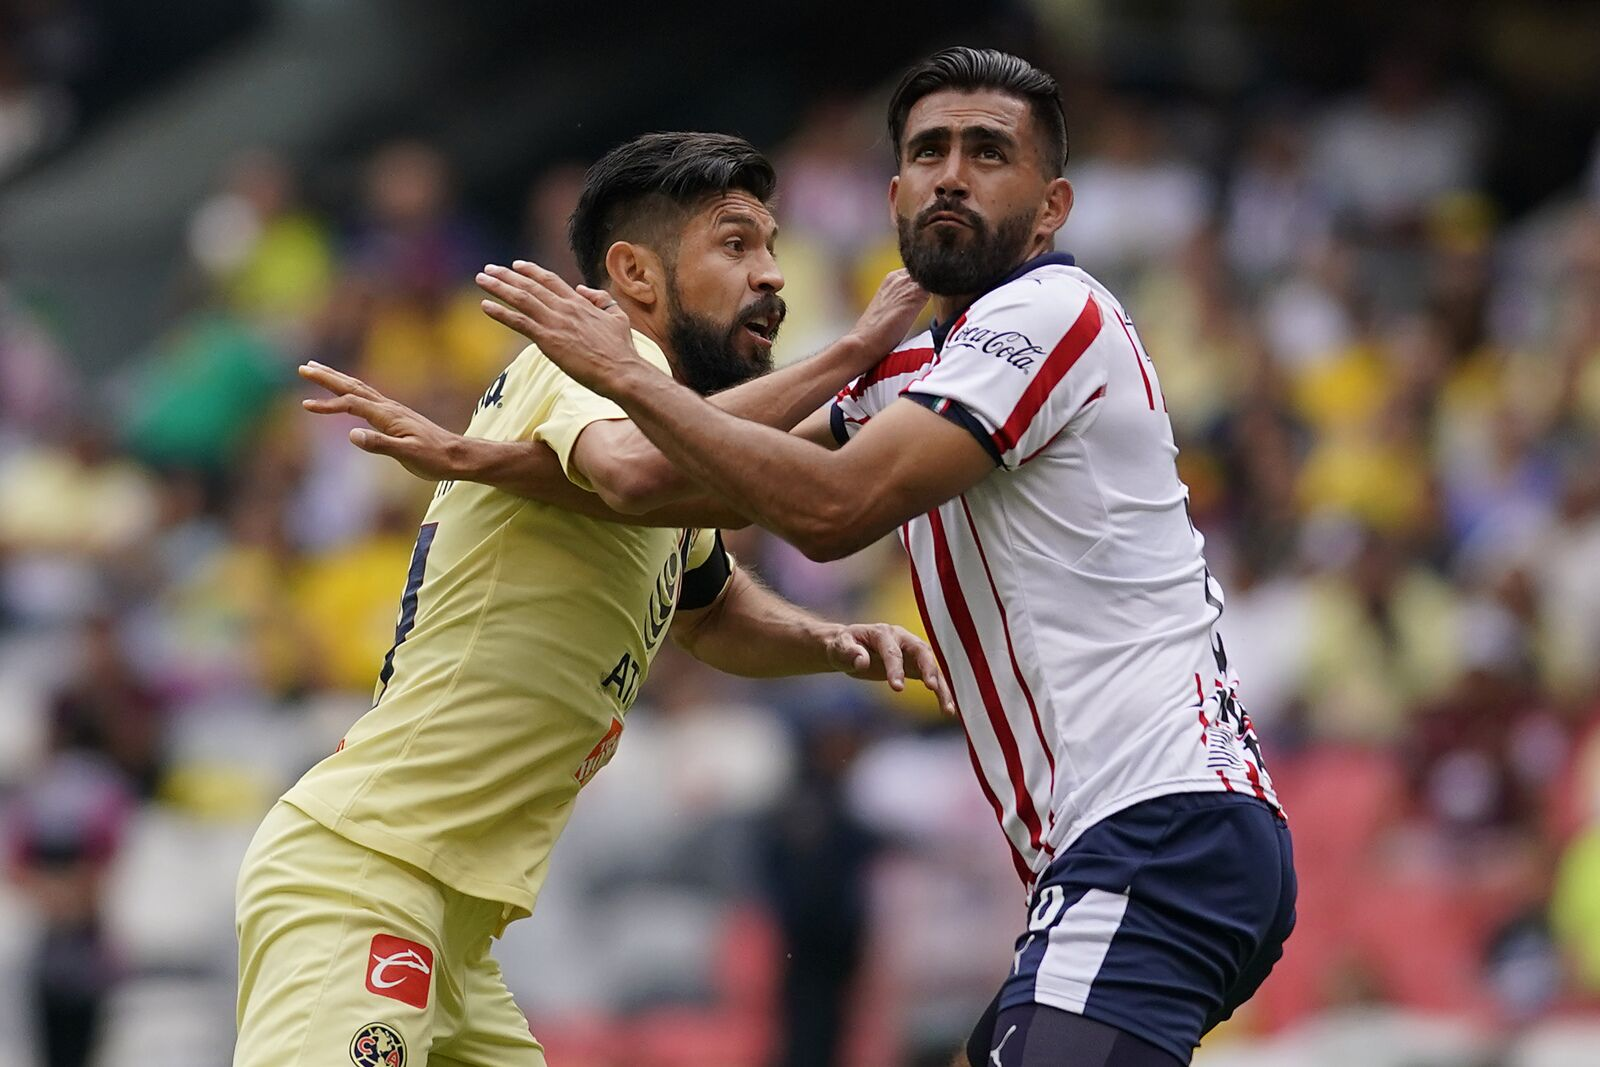 All eyes on América and Chivas as knockout round now set